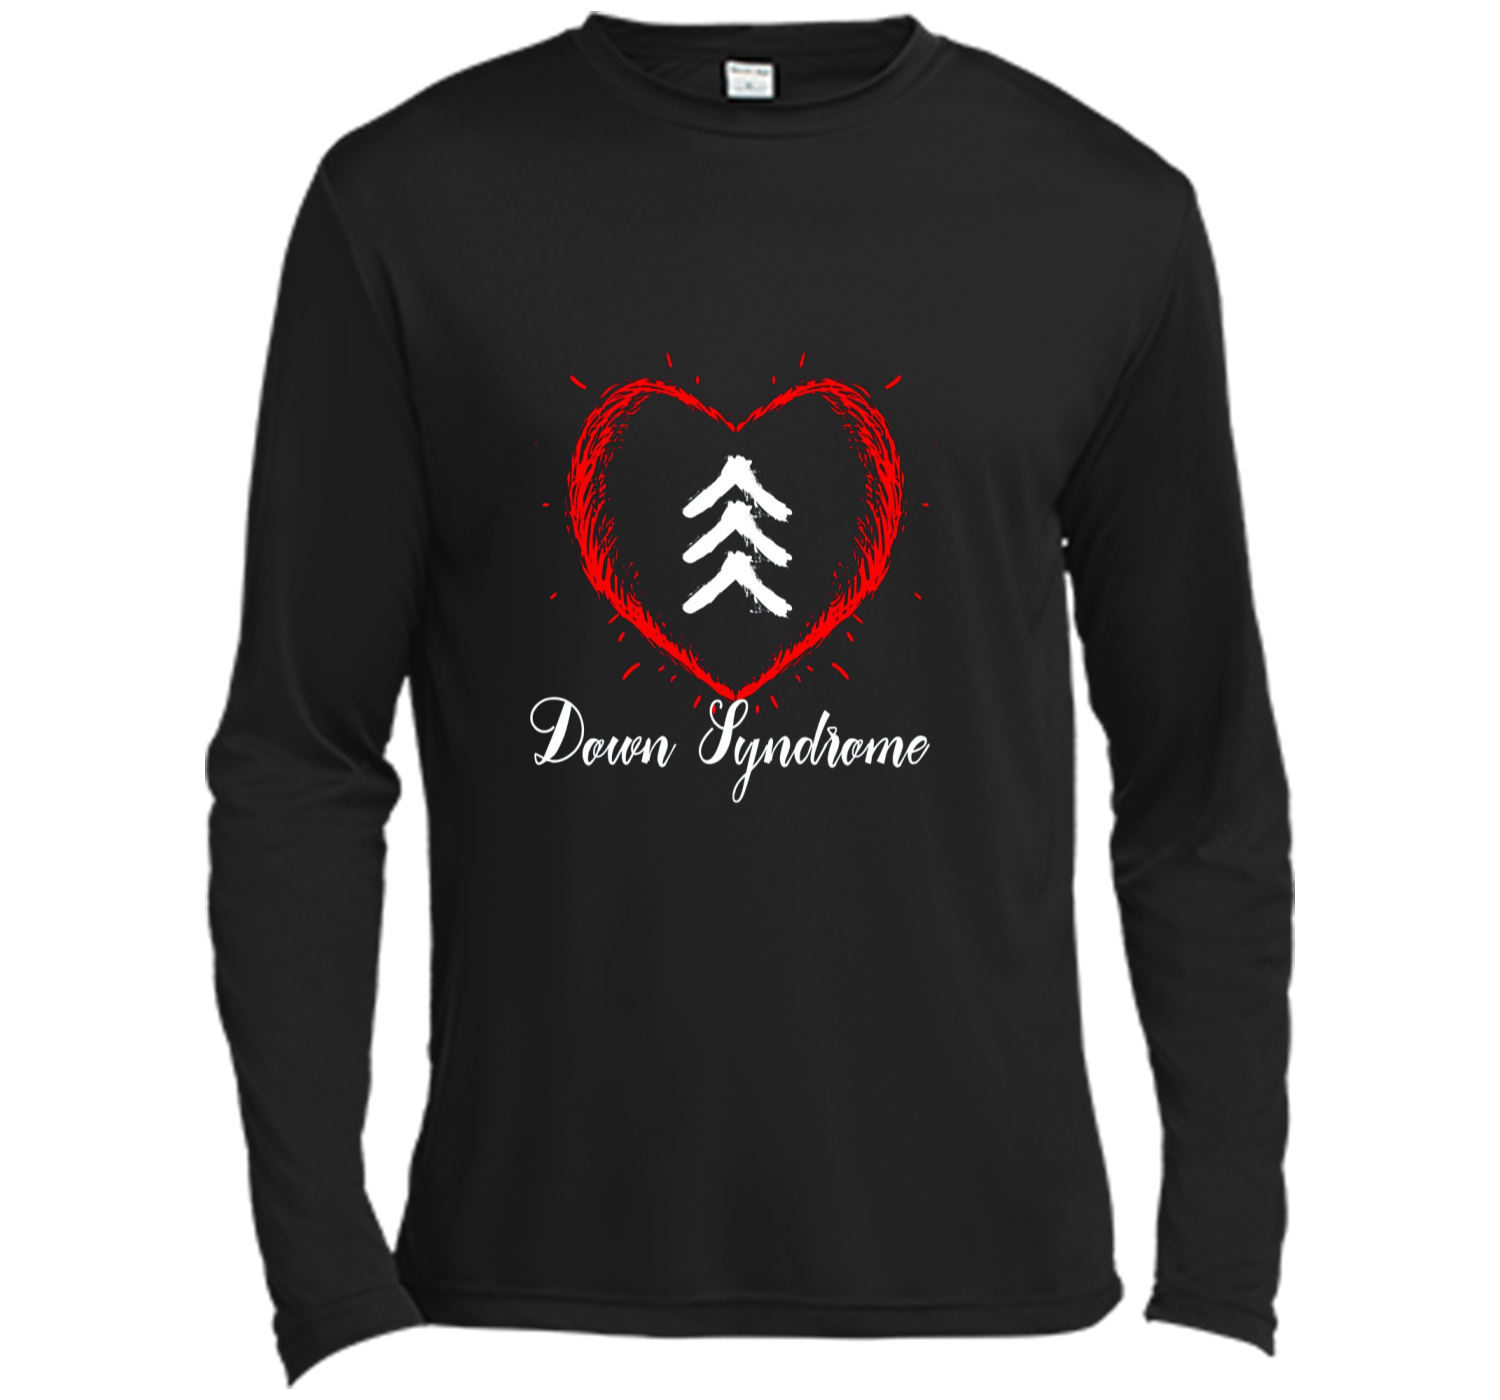 c7911c005514a Love World Down Syndrome Awareness Day Love 3 Arrows Shirt Long ...